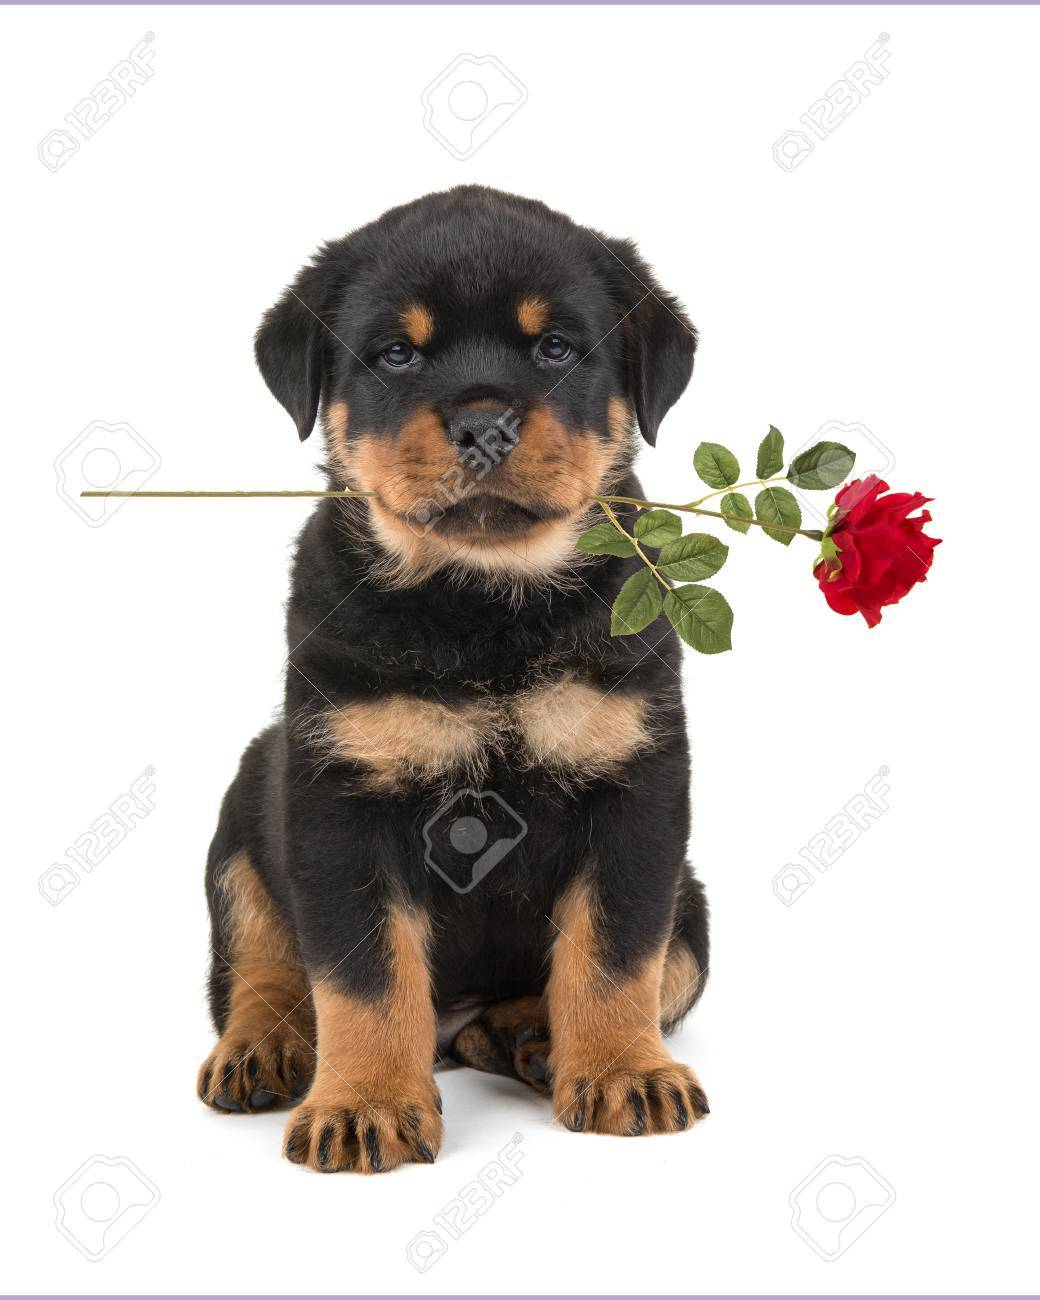 Sitting Rottweiler Puppy Facing The Camera Holding A Red Rose